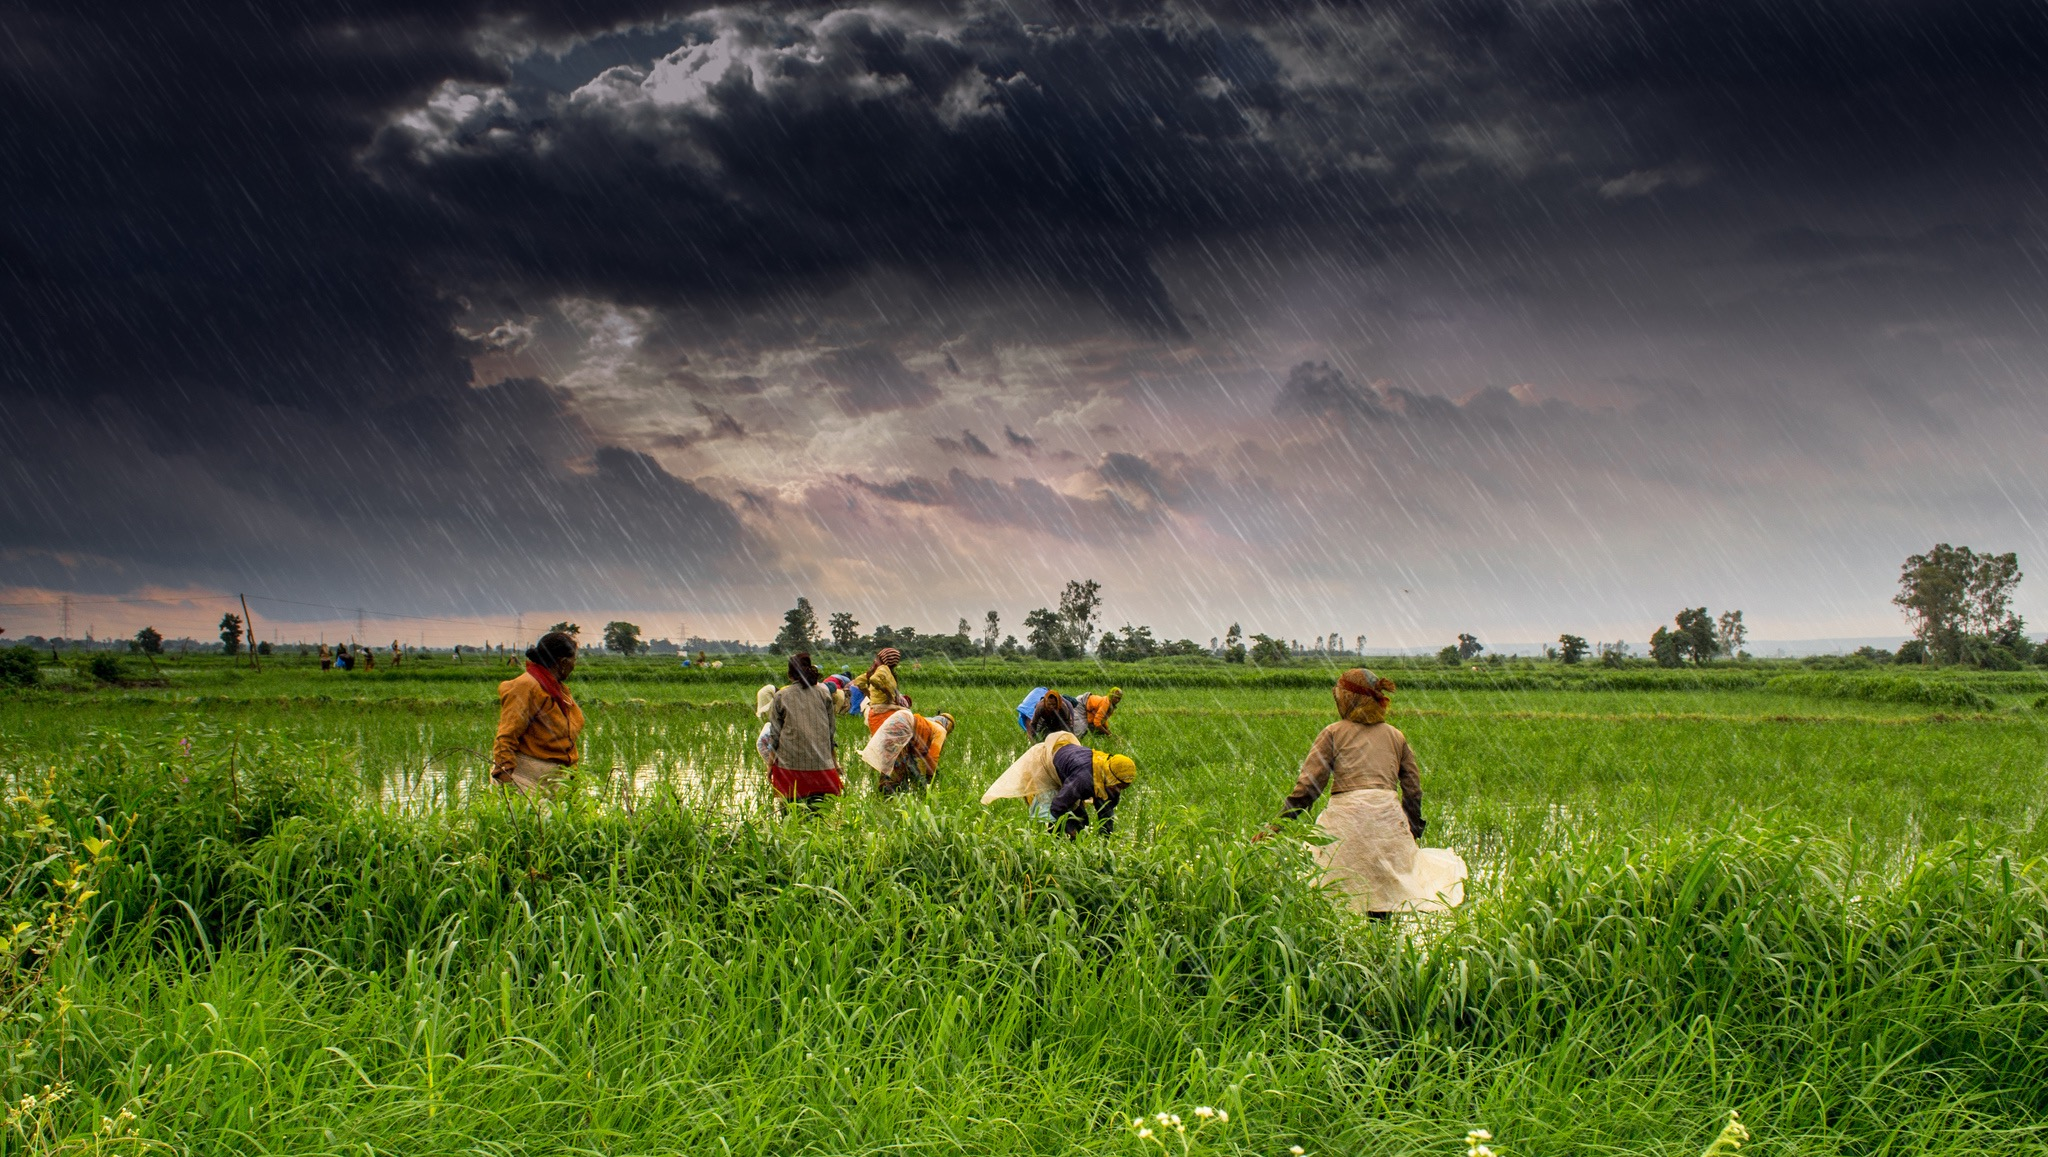 The rain comes down over Jamonia Johar, Madhya Pradesh, in July 2013. Credit: tataimitra/Flickr, CC BY 2.0